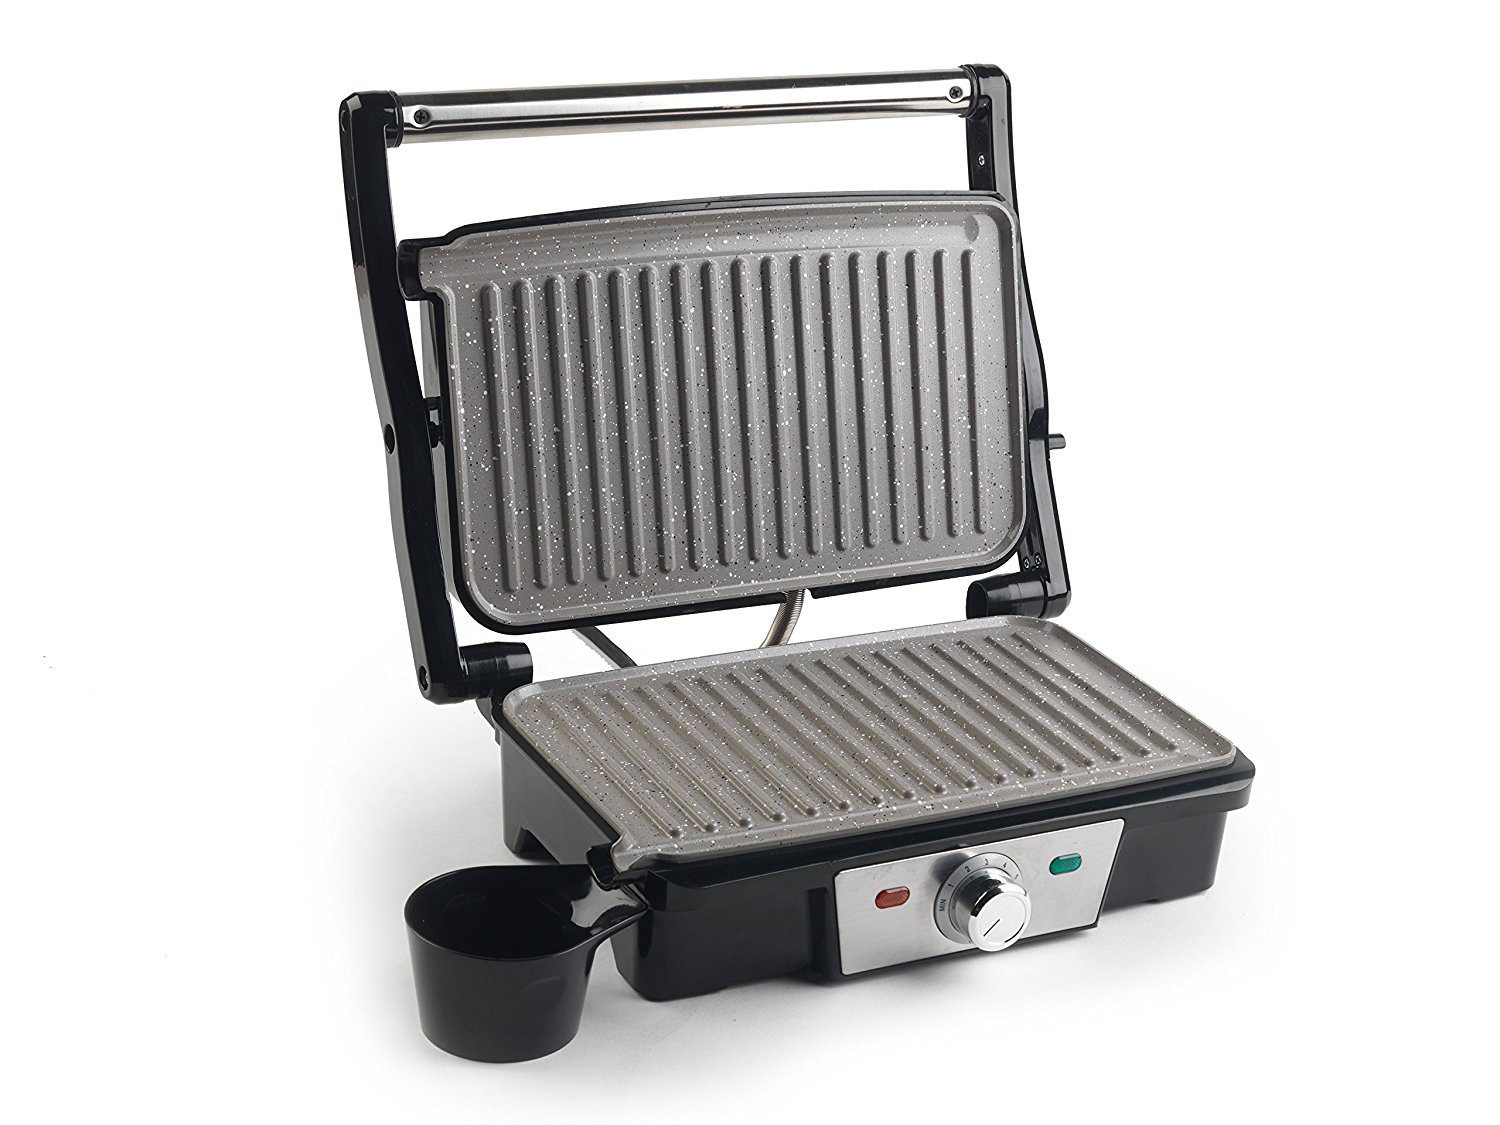 Grille Panini Progress 180 Health Grill Panini Maker Review Droidhorizon